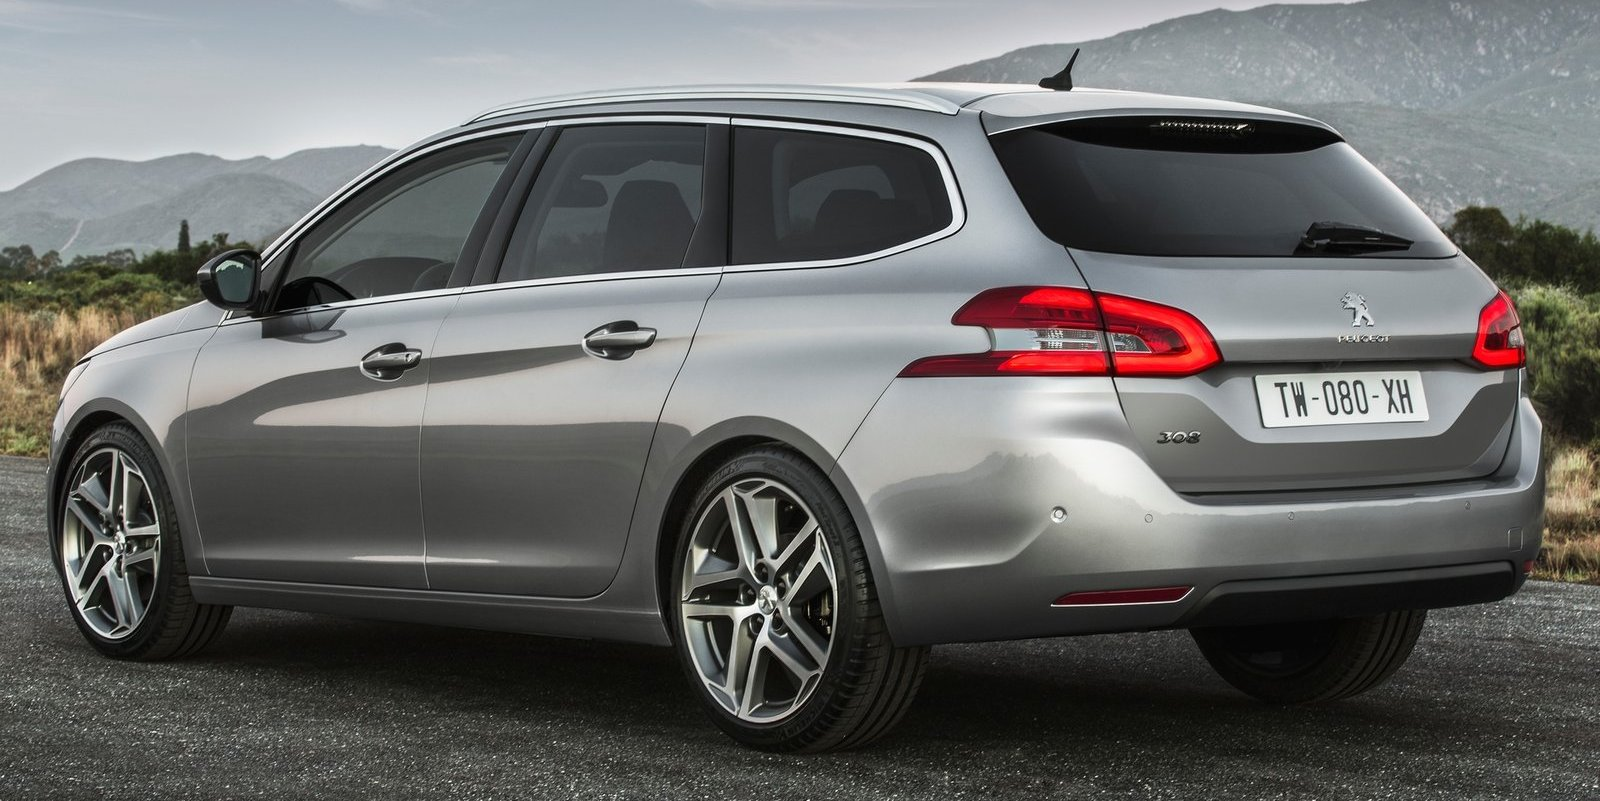 2015 Peugeot 308 : Australian technical specifications revealed